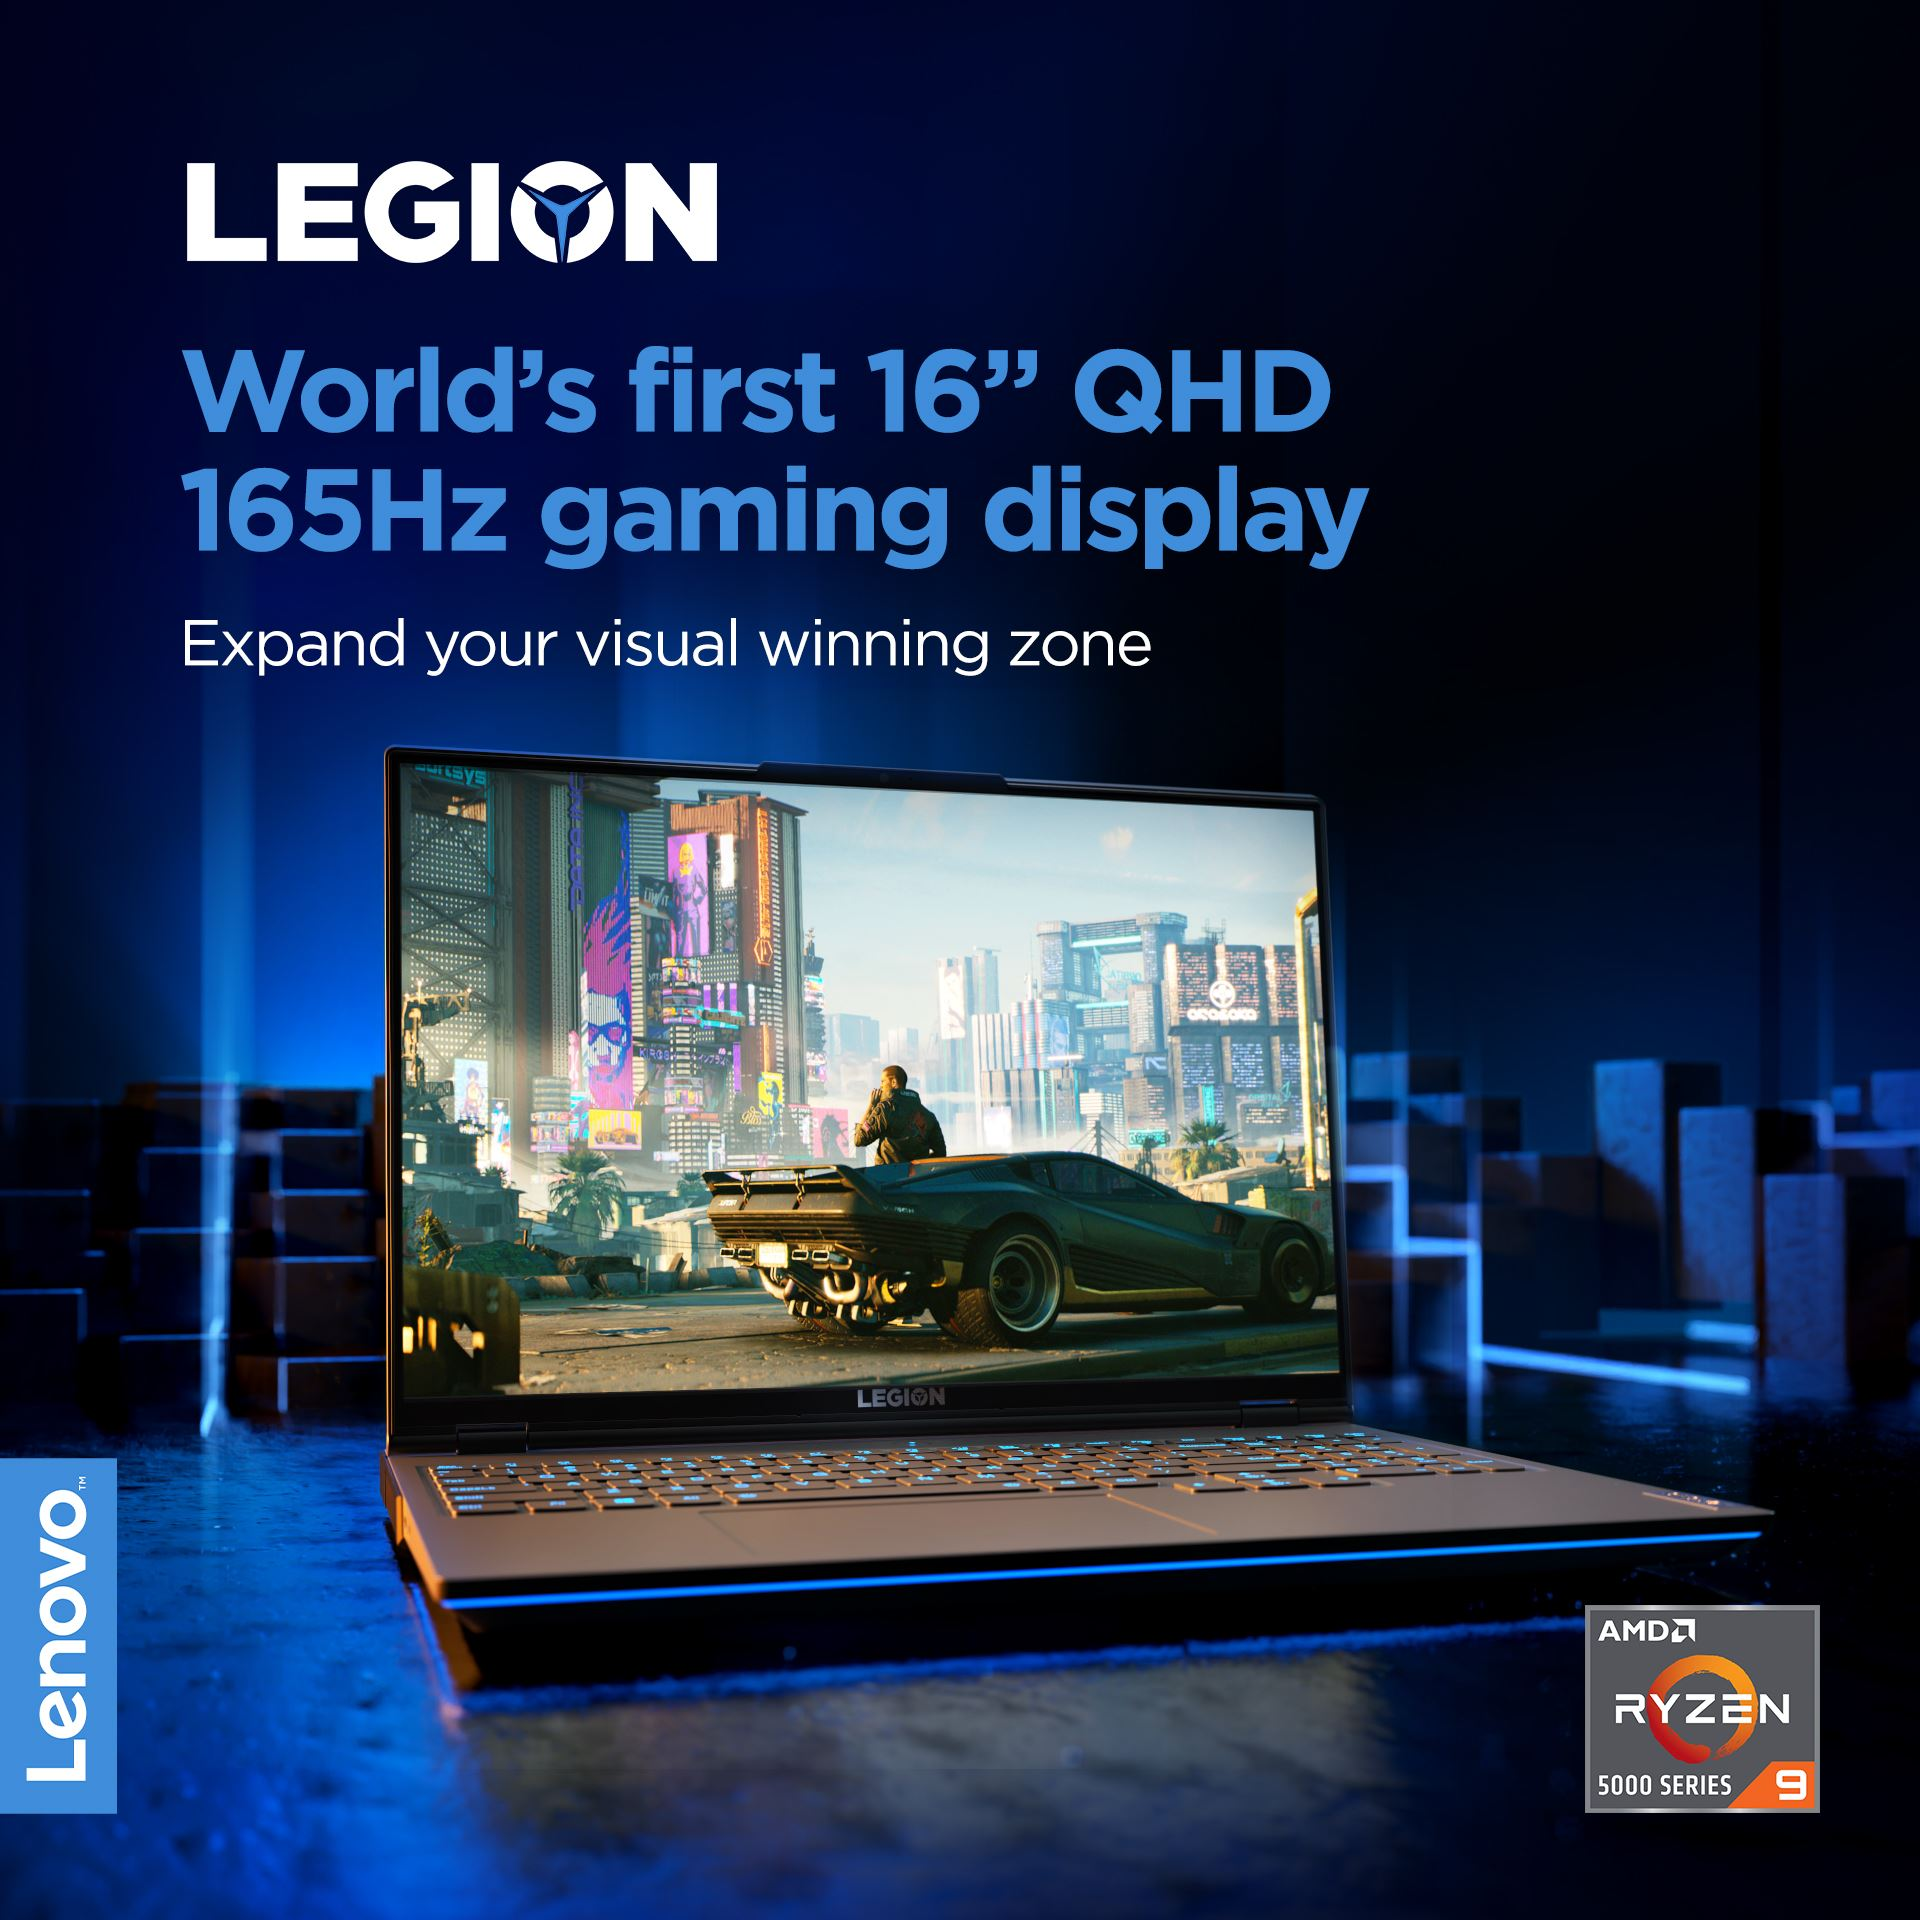 "Get yourself a display with greater gaming real estate and gorgeous visuals. The World's first 16"" QHD 165Hz gaming display is powered by @AMD Ryzen™ 5000 H-Series Mobile Processors and clocks under 3ms response times."